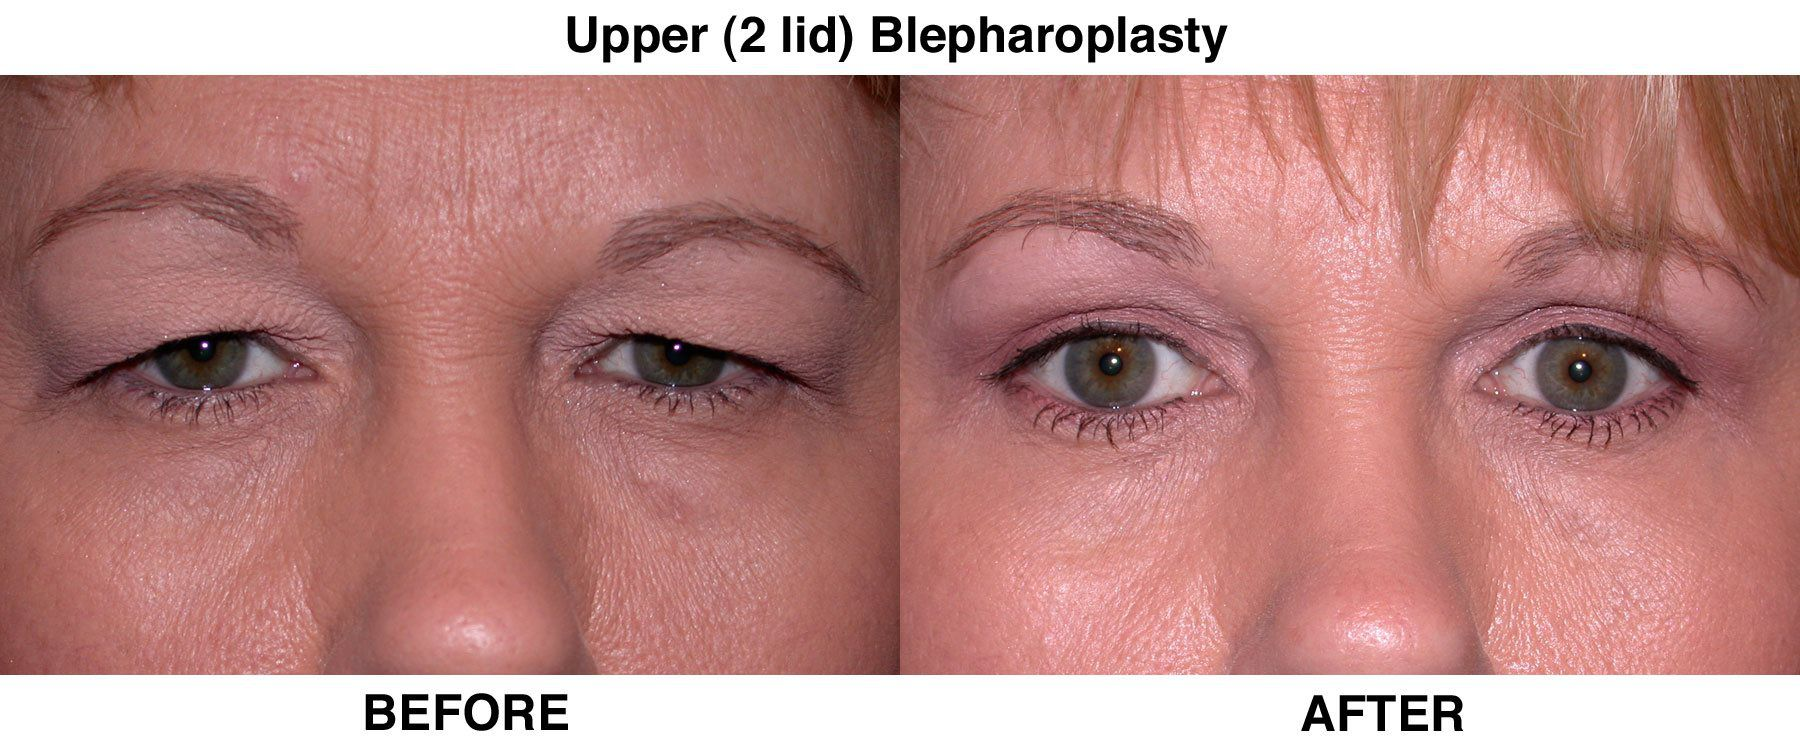 What Is Blepharoplasty advise